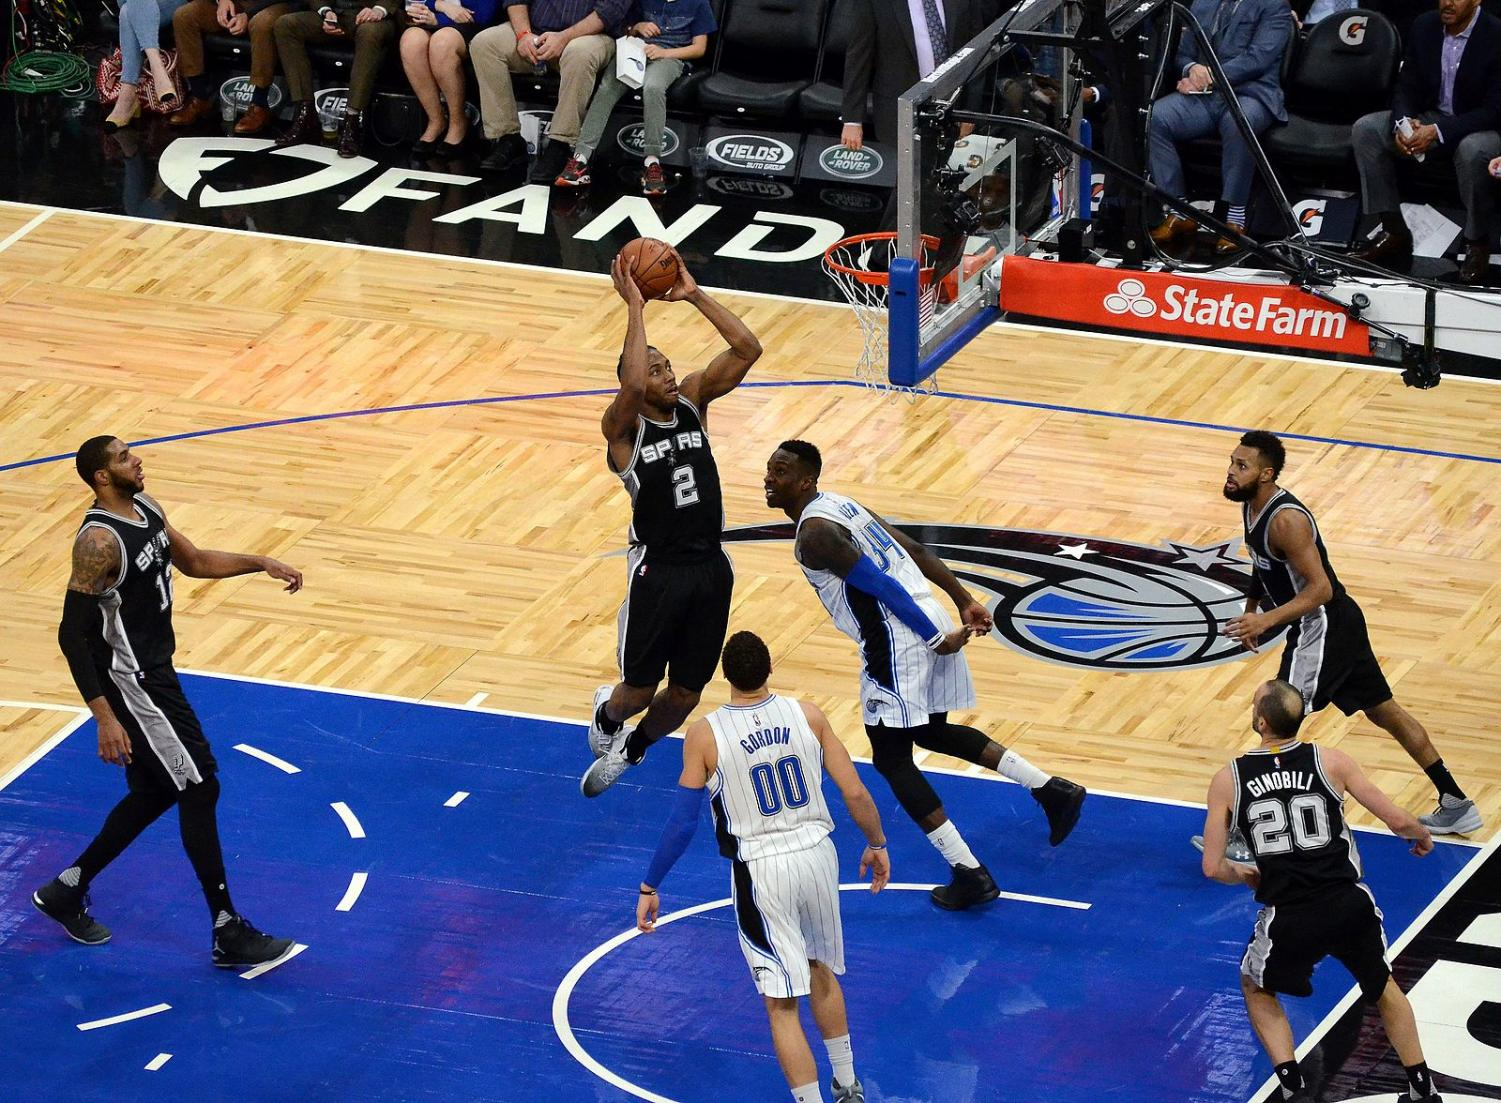 Kawhi Leonard dunks over the Orlando Magic